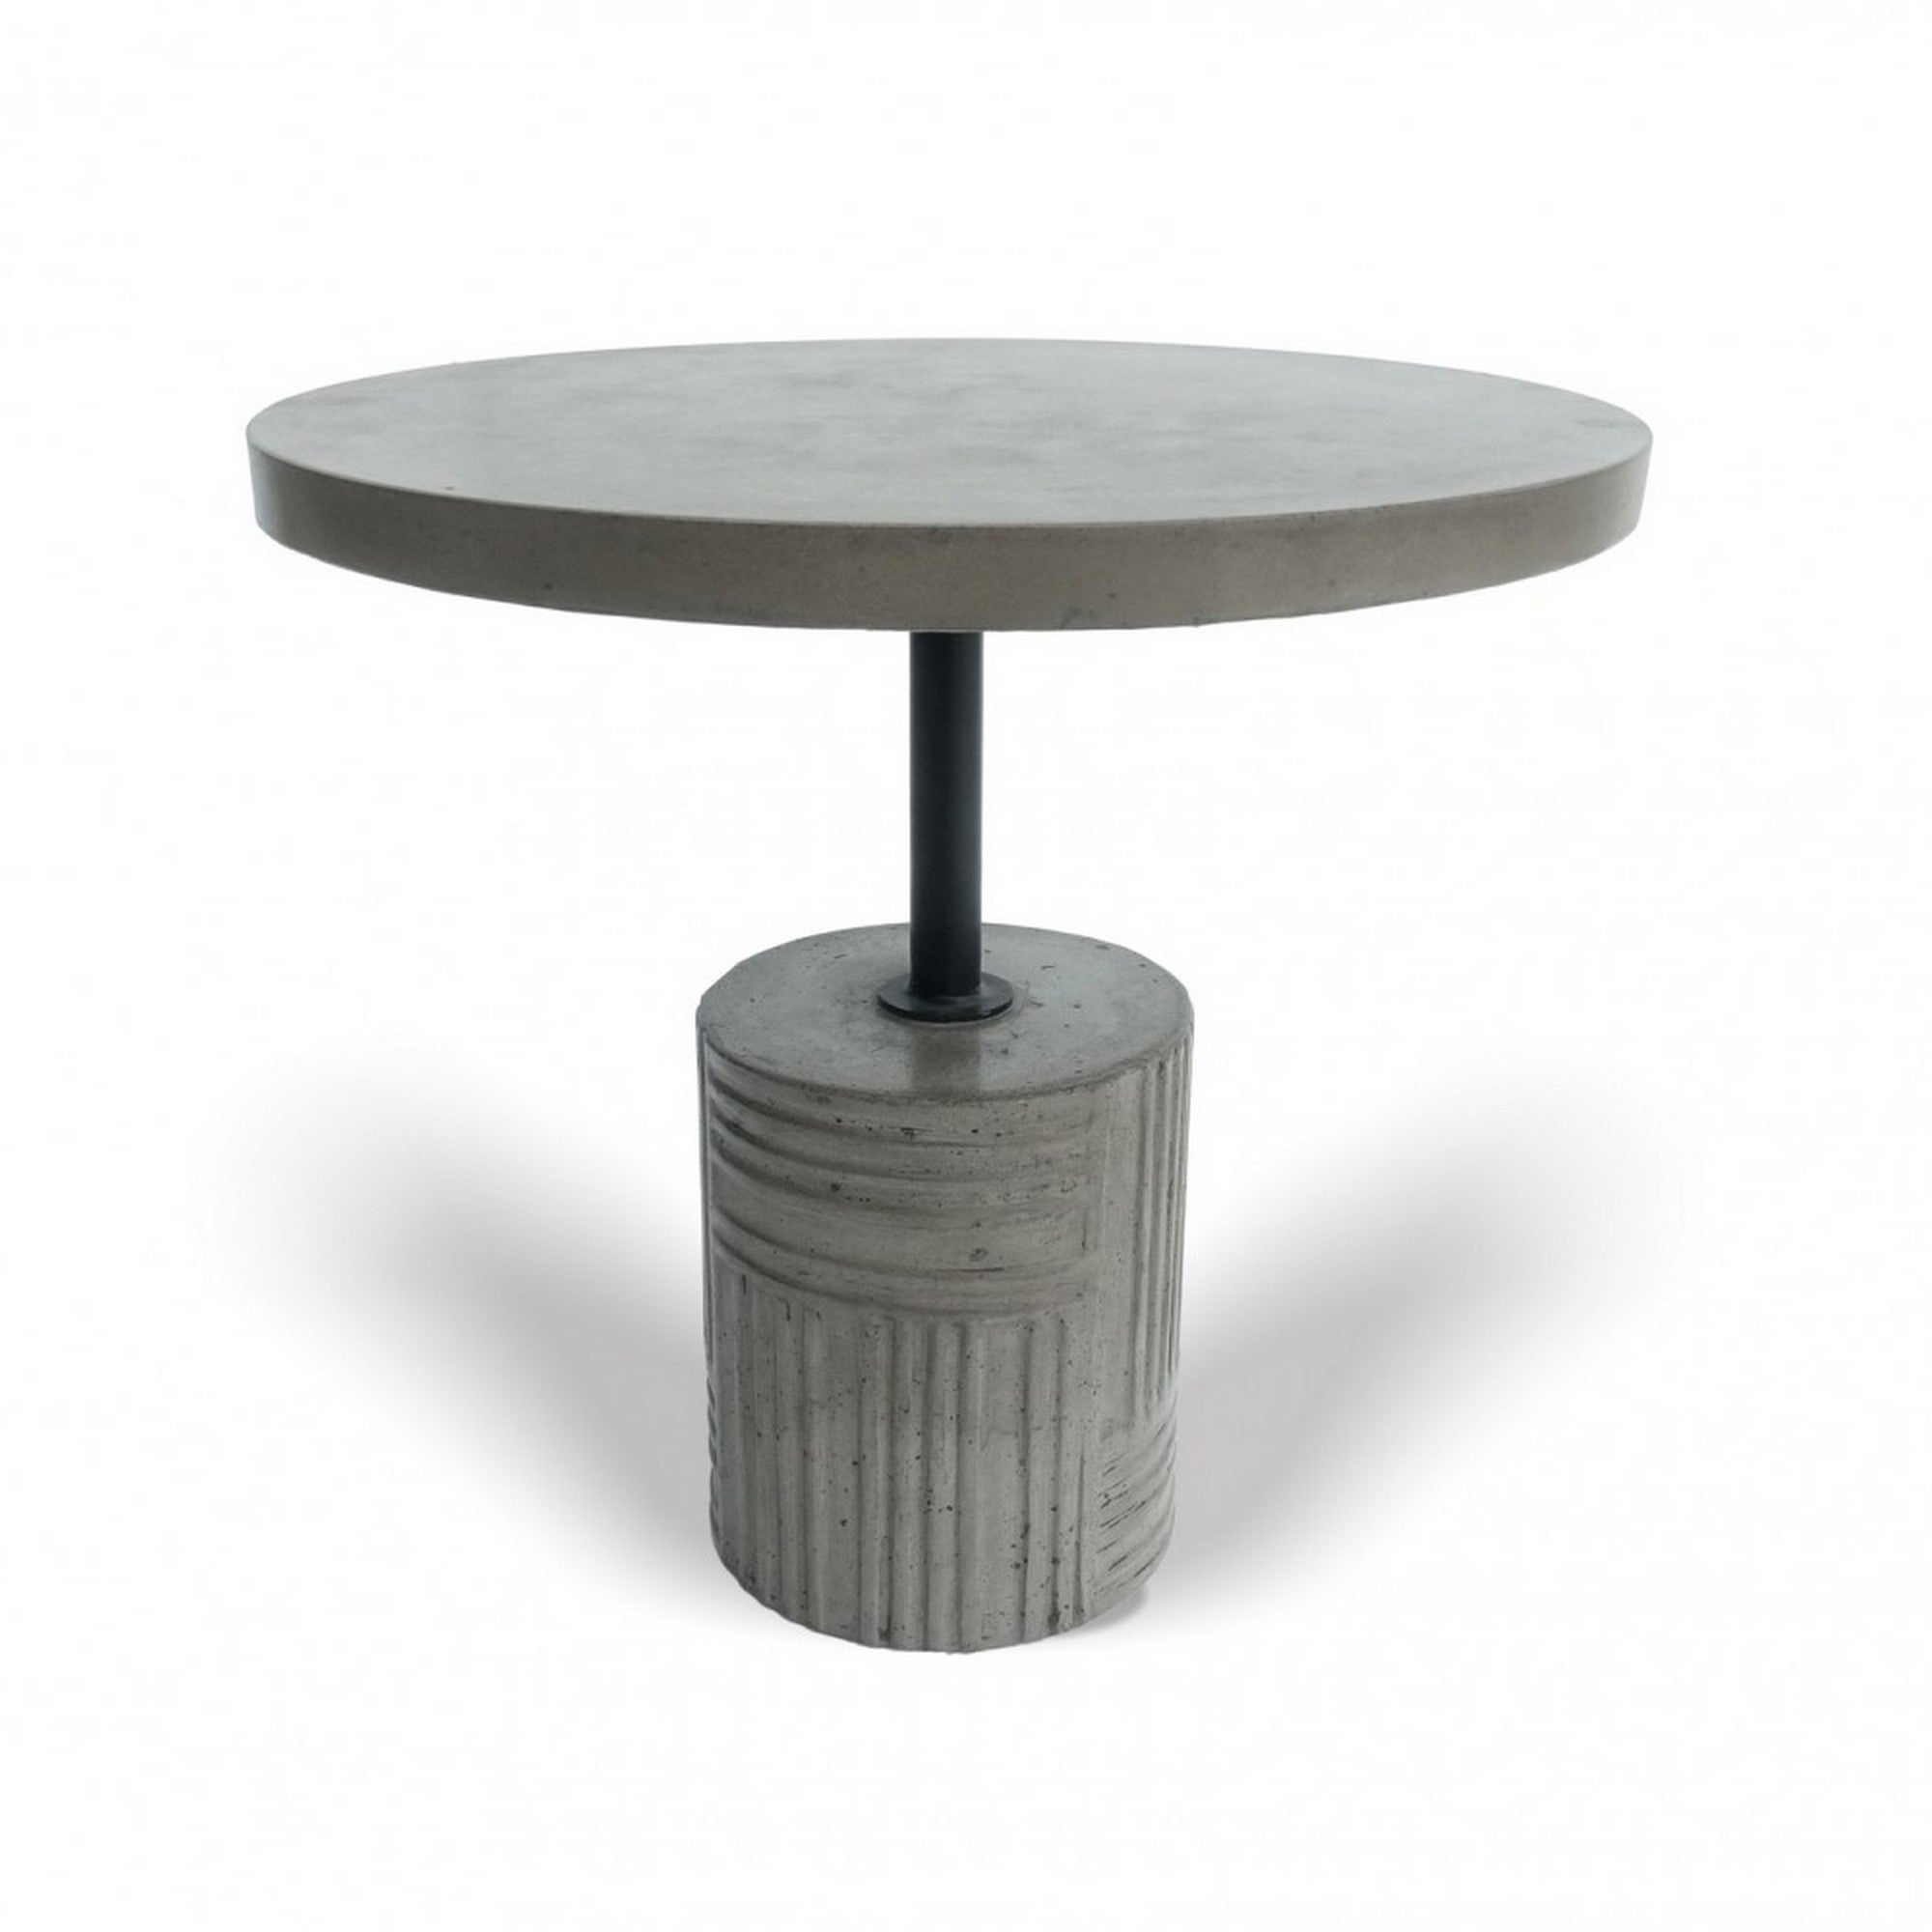 Picture of: Contemporary Concrete End Table With Round Top And Cylindrical Base Gray On Sale Overstock 31823570